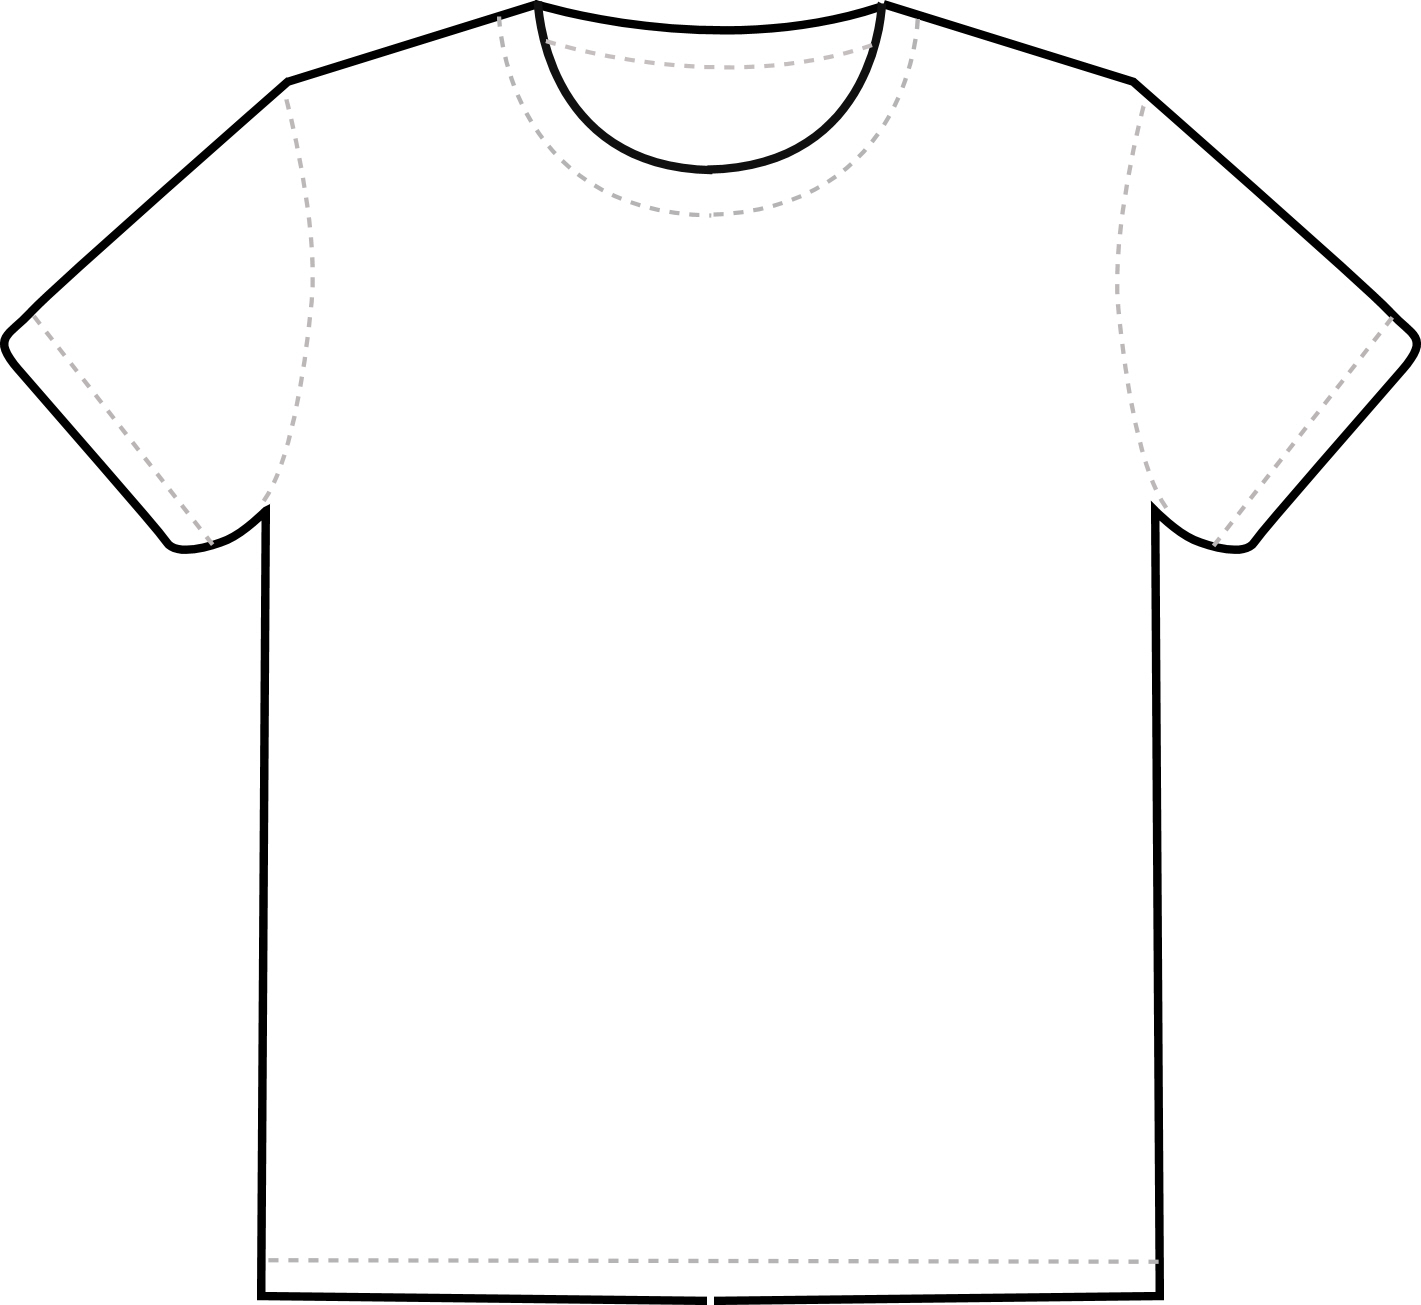 Design The T Shirt Using This Template To Help You  It Must Include